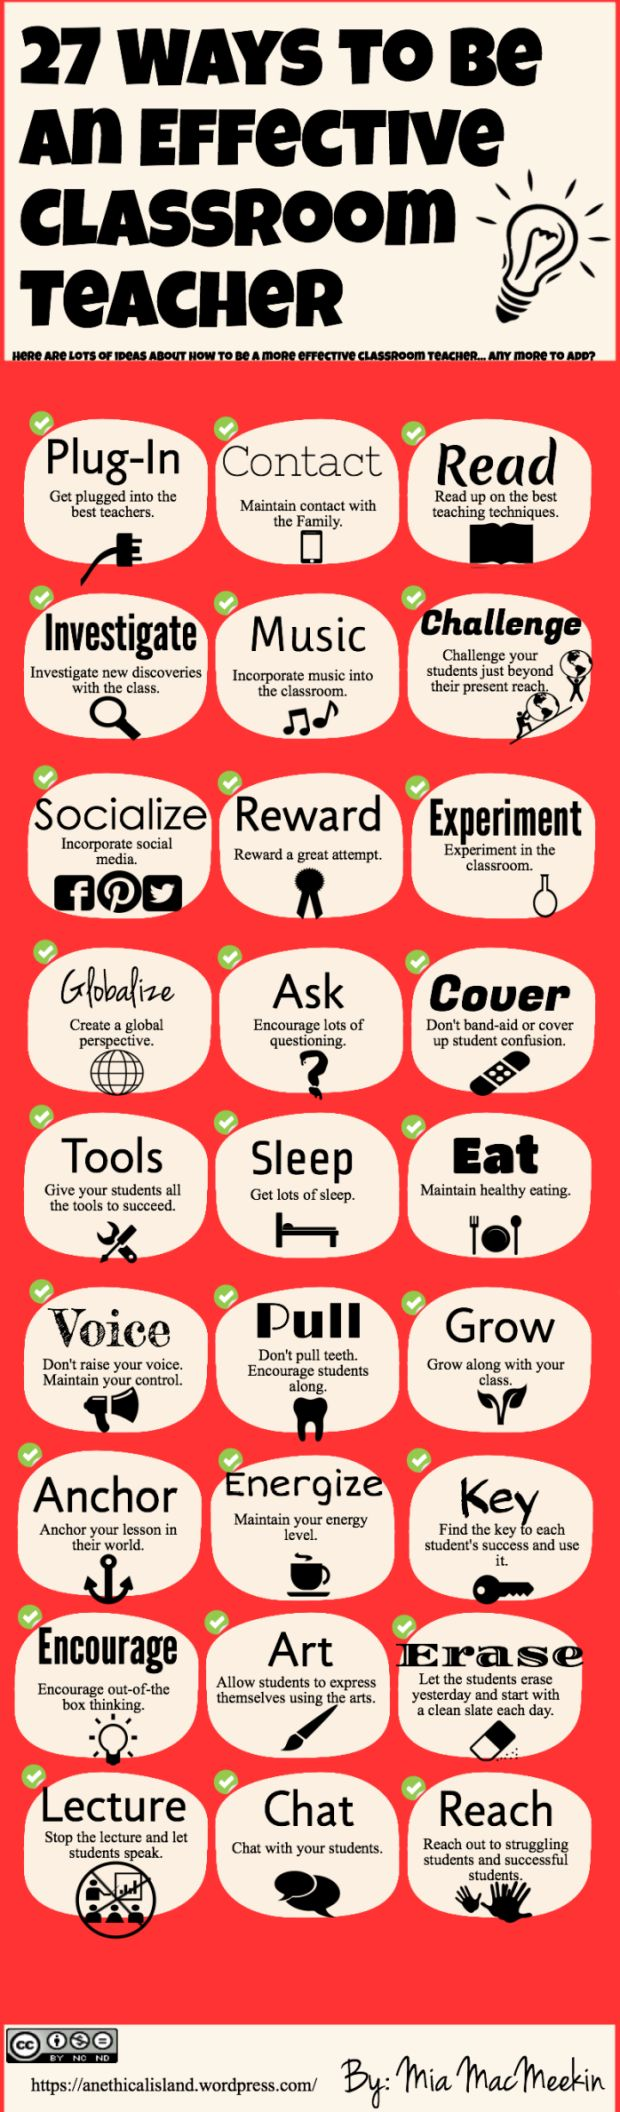 The 27 Characteristics Of Highly Effective Teachers is an excellent visual. My favorites are to chat with your students (grown students have come back to tell me they appreciated being treated like real people), and to incorporate music. I can't sing, but that's never stopped me!